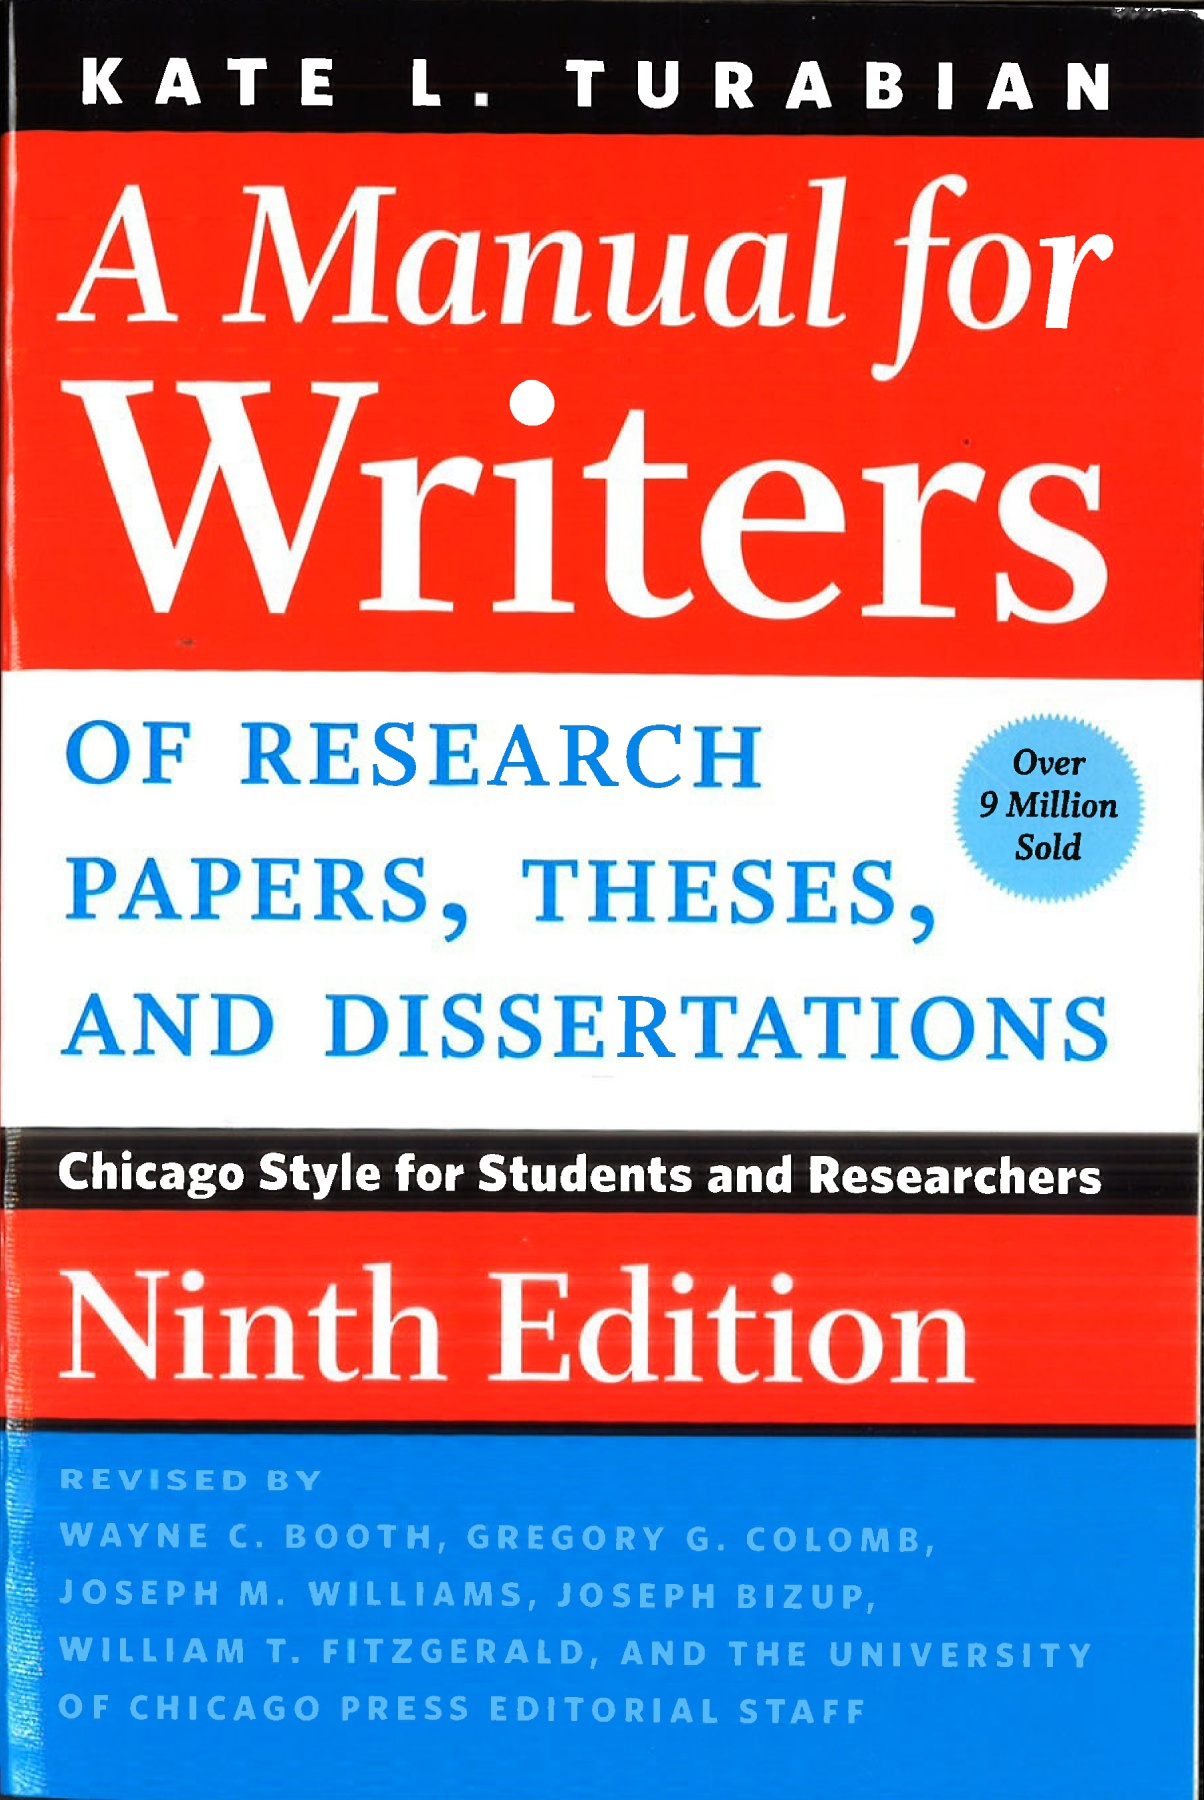 008 Research Paper Manual For Writers Of Papers Theses And Sensational A Dissertations Eighth Edition Pdf 9th 8th Full